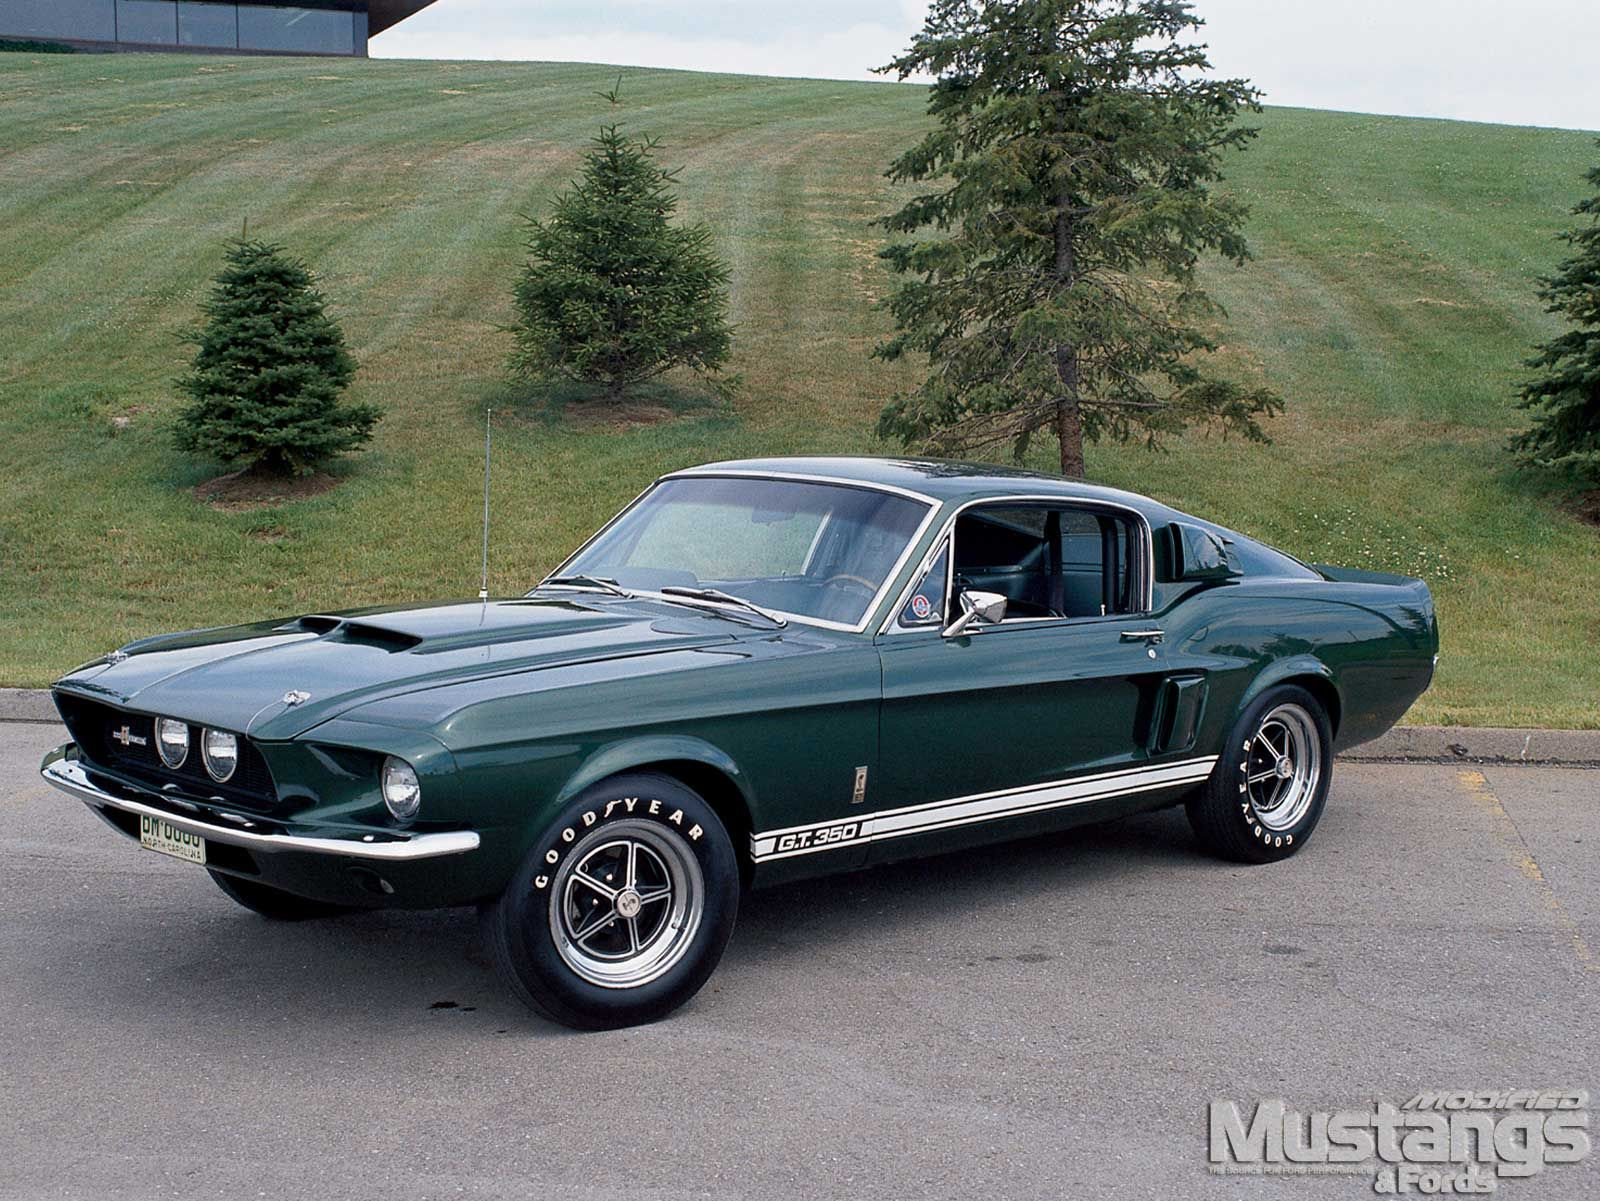 1967 ford shelby gt350 mustang shelby power photo image gallery